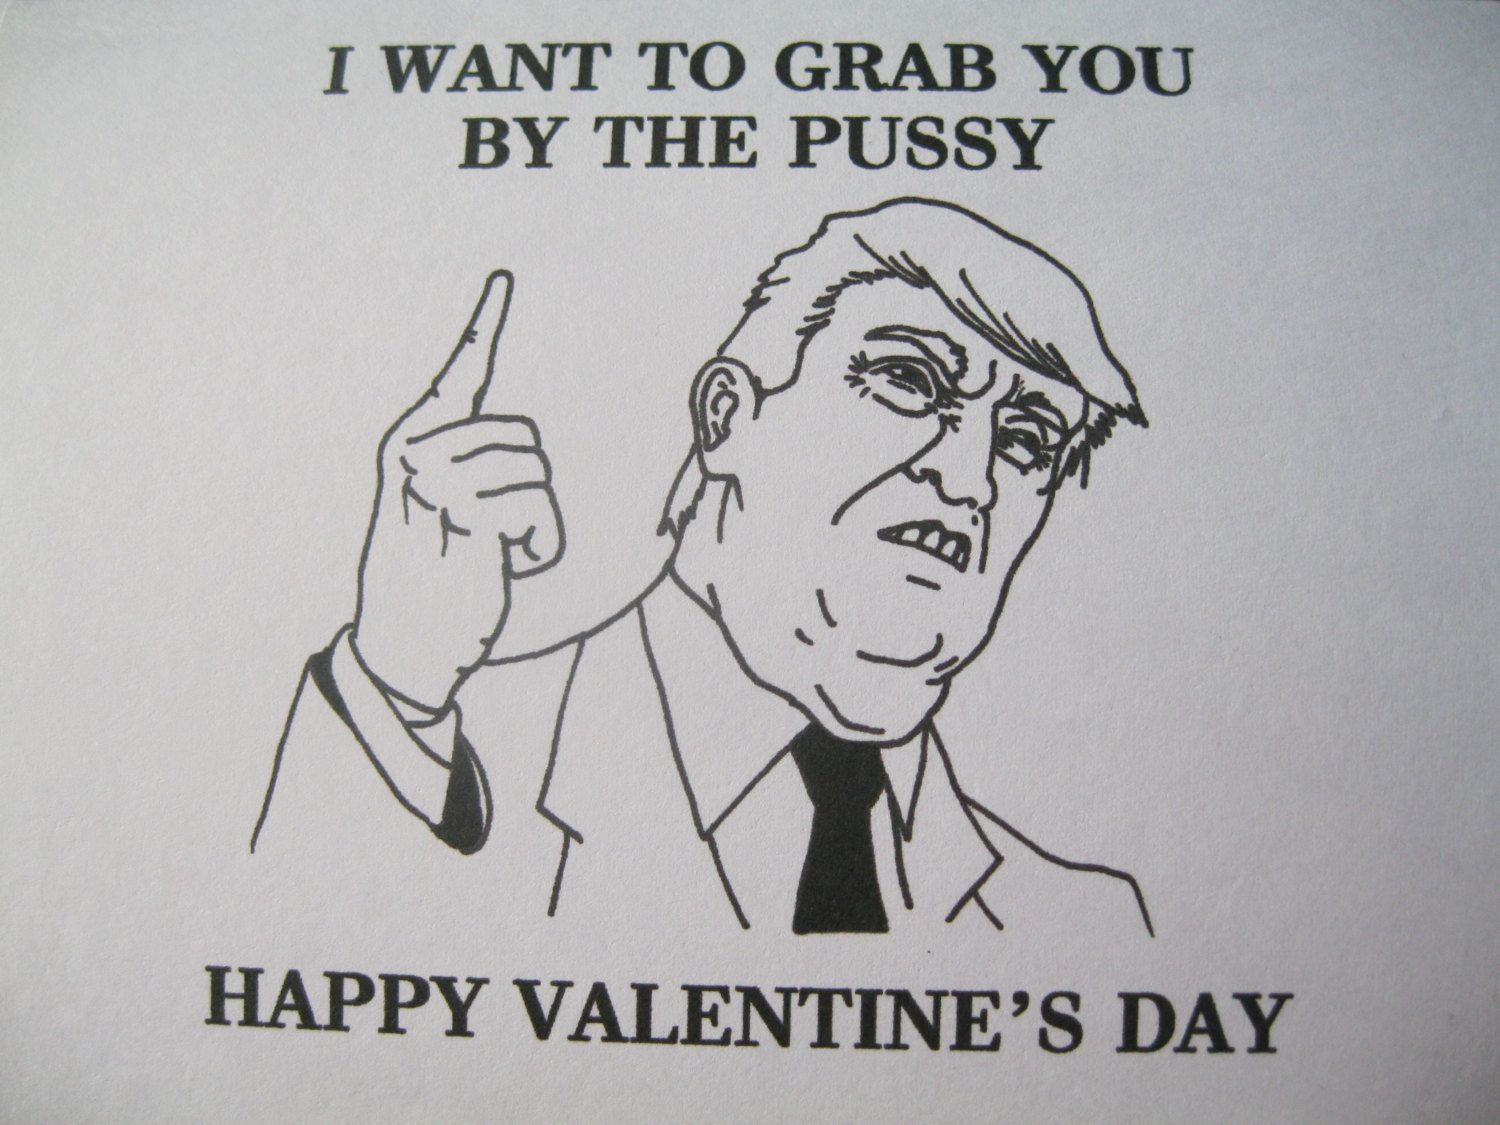 funny donald trump valentines card rude naughty girlfriend gift dirty wife president grab her by the pussy joke silly adult humour sexy - Dirty Valentines Jokes